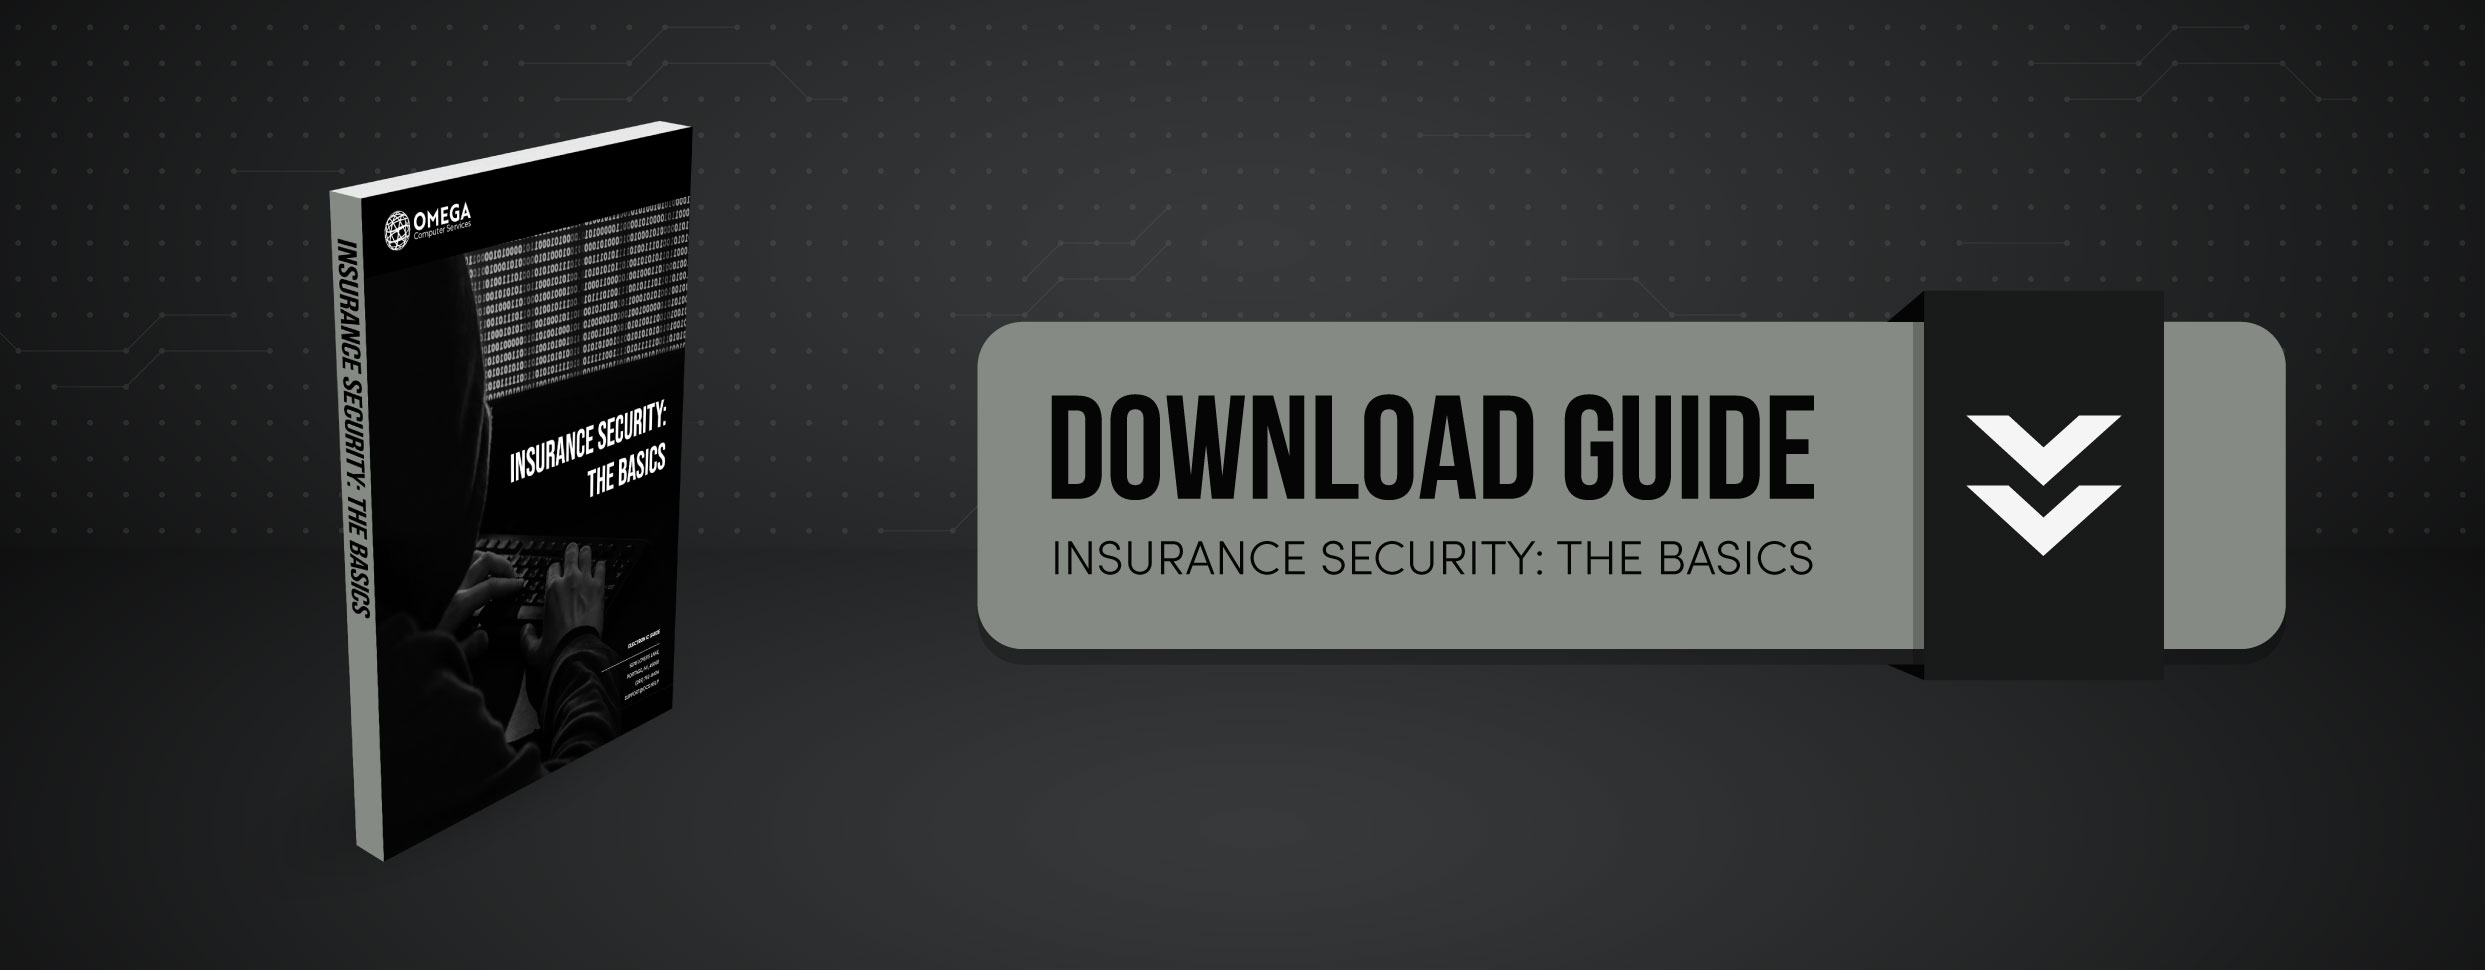 artificial intelligence, machine learning, applications for ai, insurance security guide